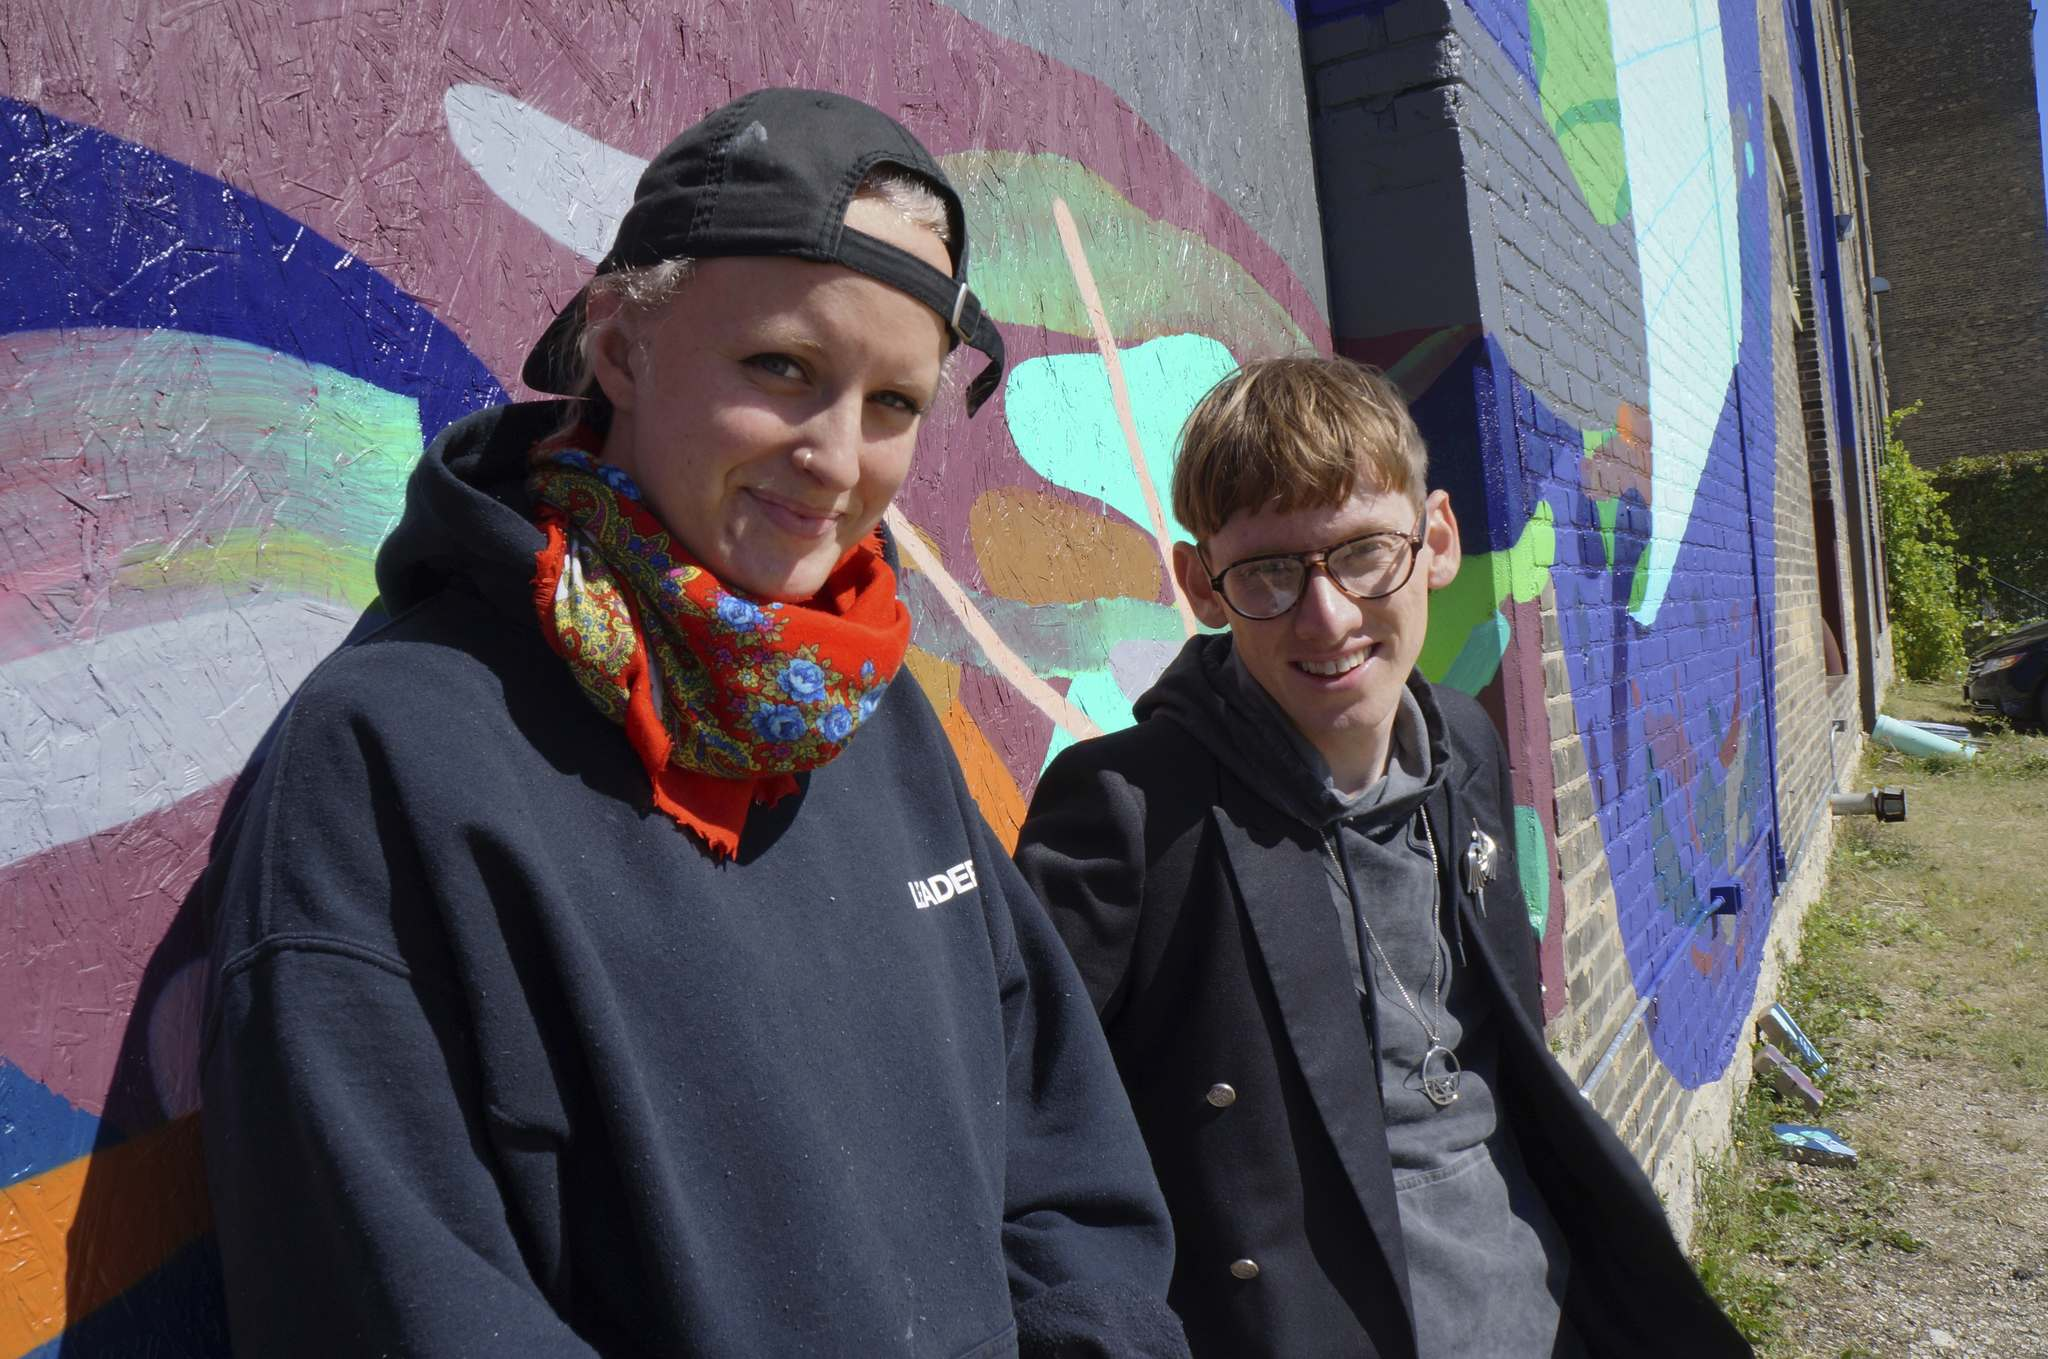 JESSICA BOTELHO-URBANSKI/WINNIPEG FREE PRESS</p><p>In the North End, Chloe Chafe, 24, and Andrew Eastman, 29, are proof side gigs can rise sky high.</p>